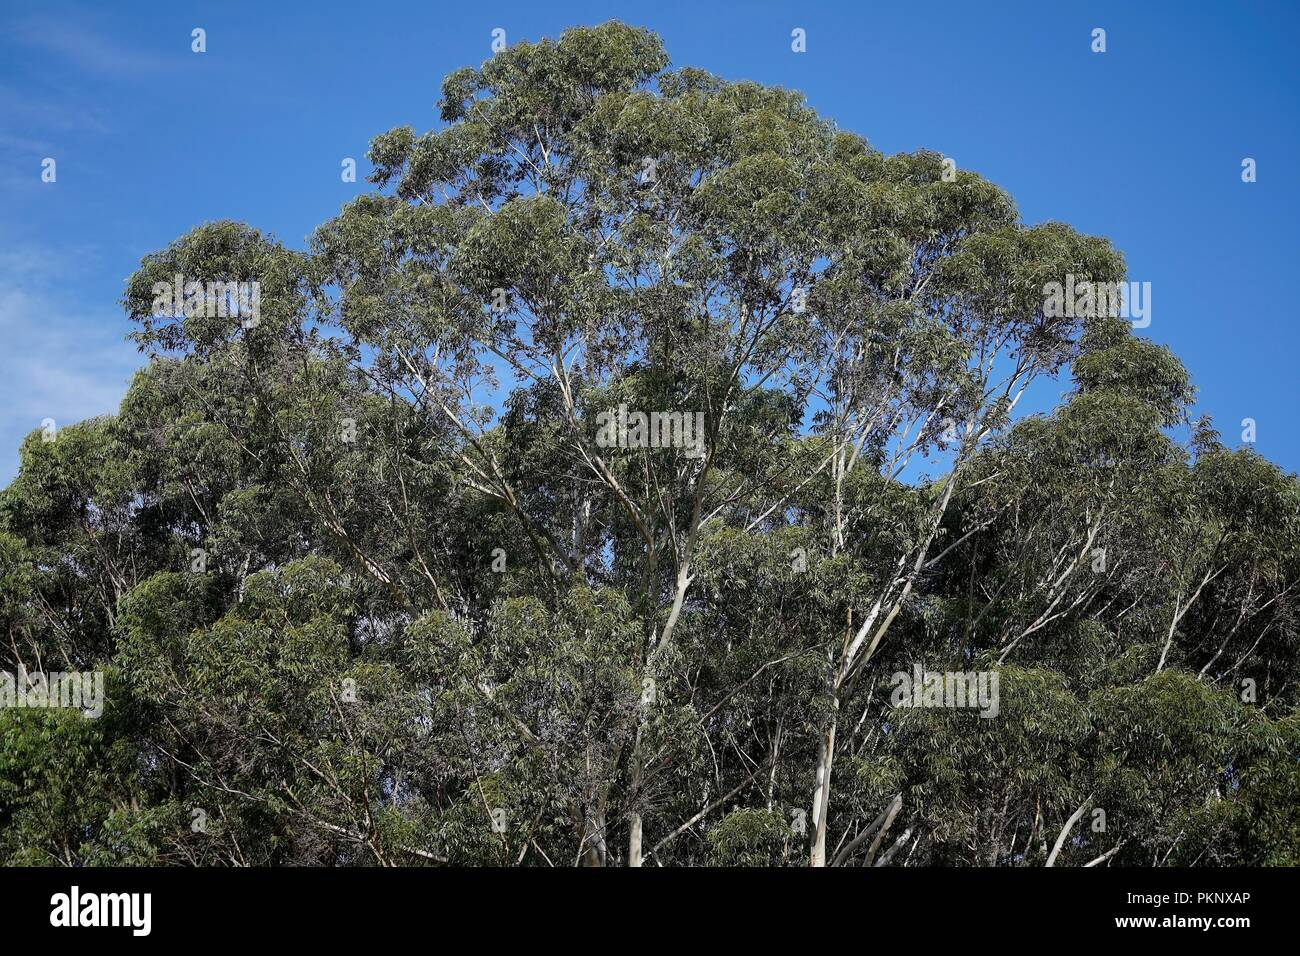 Eucalypt trees, an Australian native plant, showing the canopy with clear blue sky above. - Stock Image